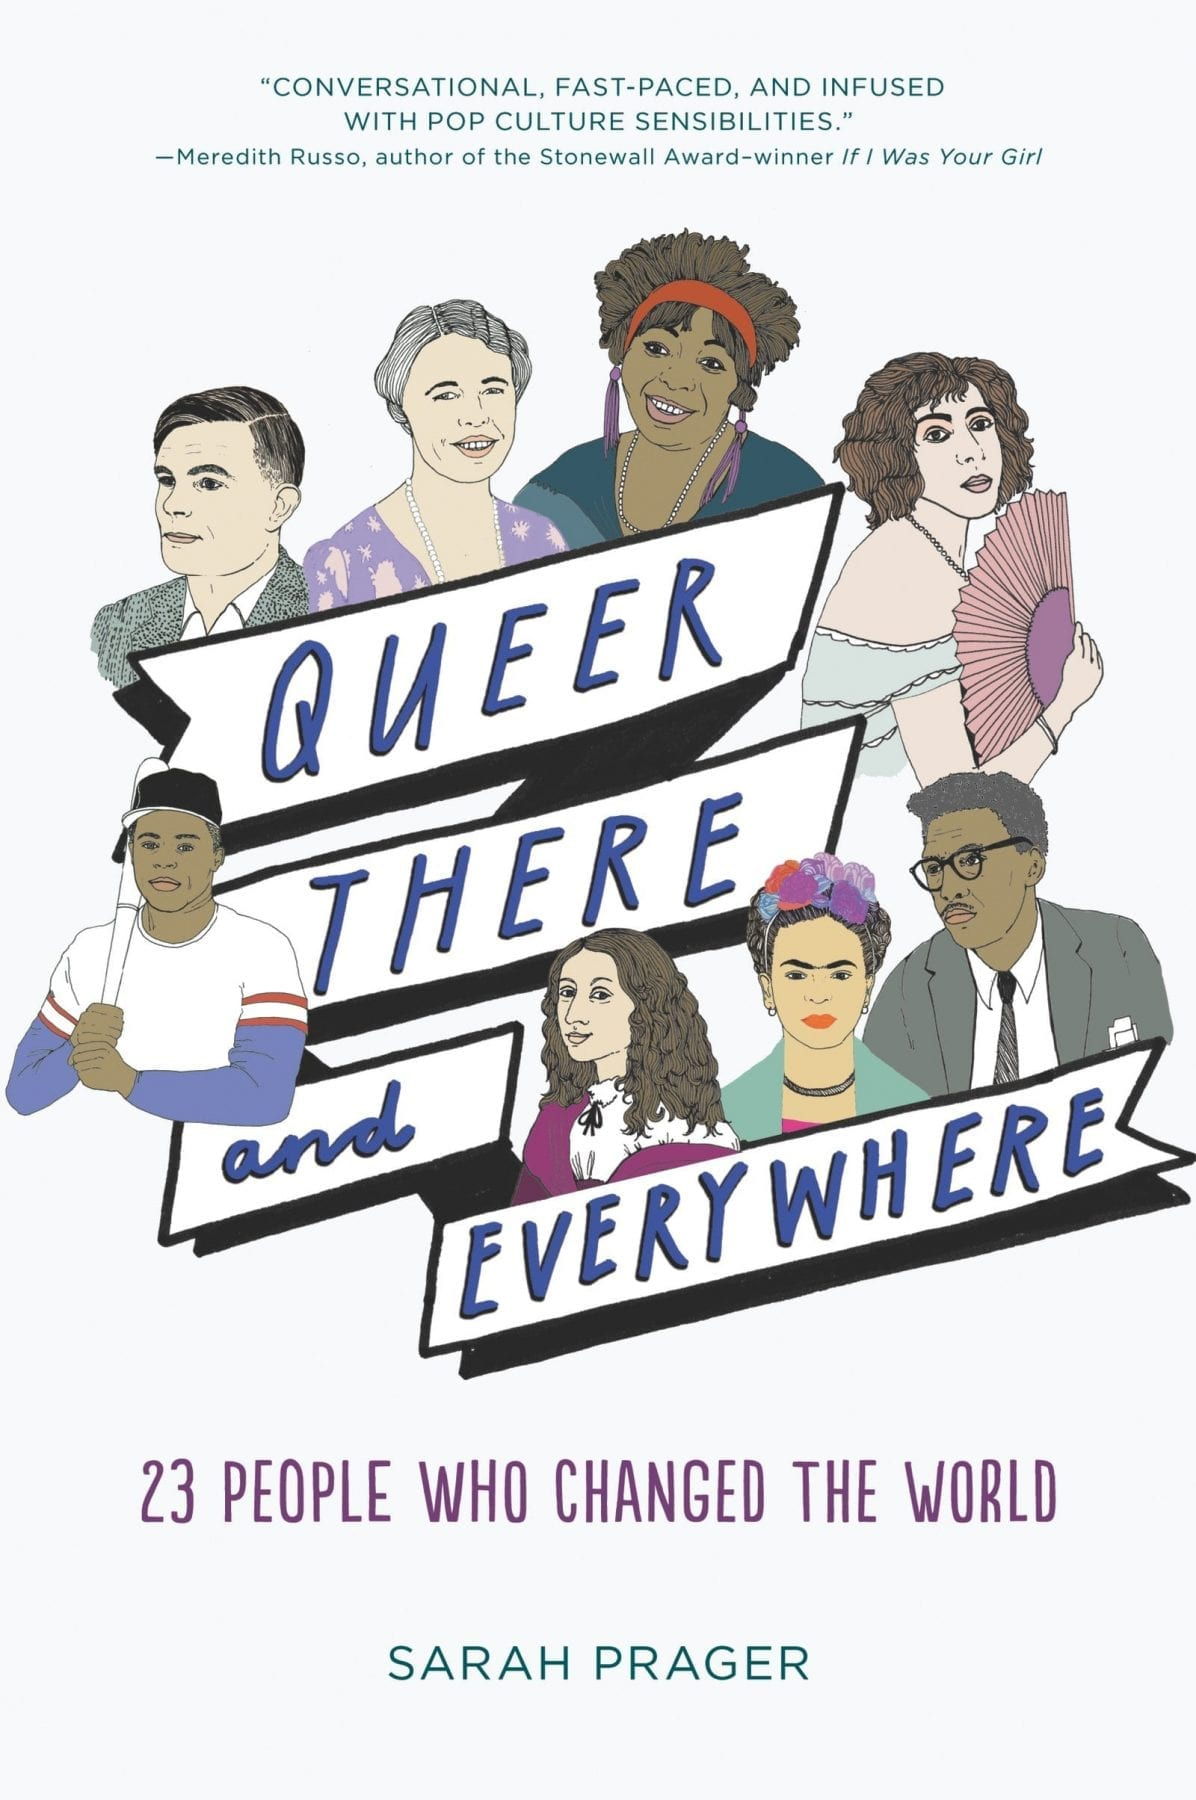 https://www.amazon.com/Queer-There-Everywhere-People-Changed/dp/0062474324/ref=tmm_pap_swatch_0?_encoding=UTF8&qid=1527884533&sr=1-1